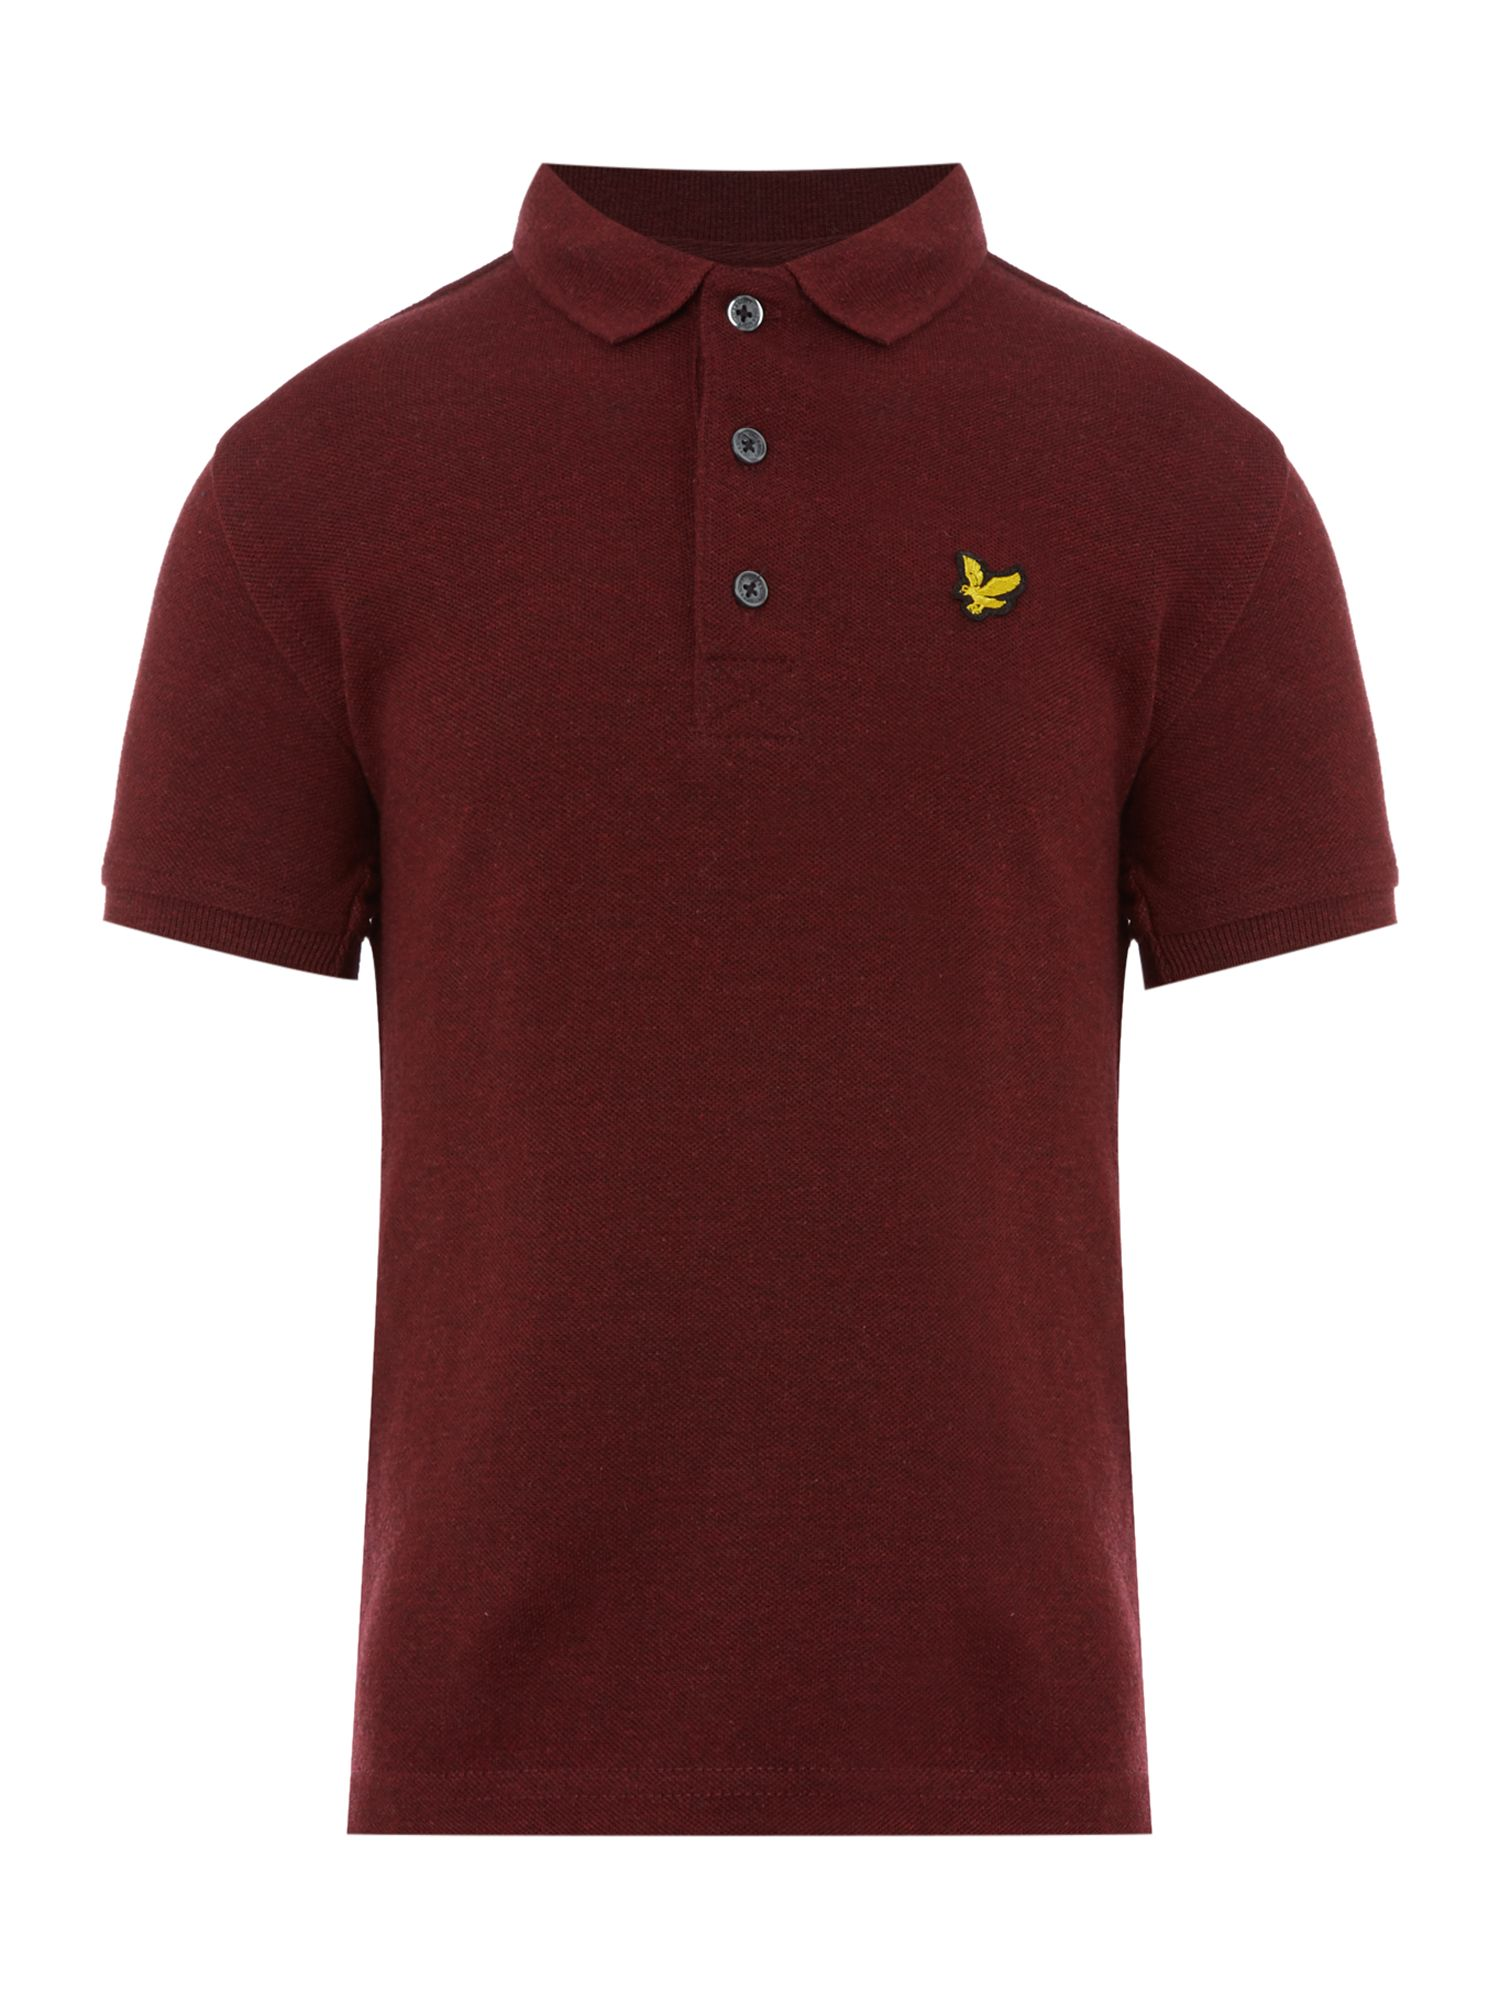 Lyle and Scott Lyle and Scott Boys Marl Small Logo Polo, Claret